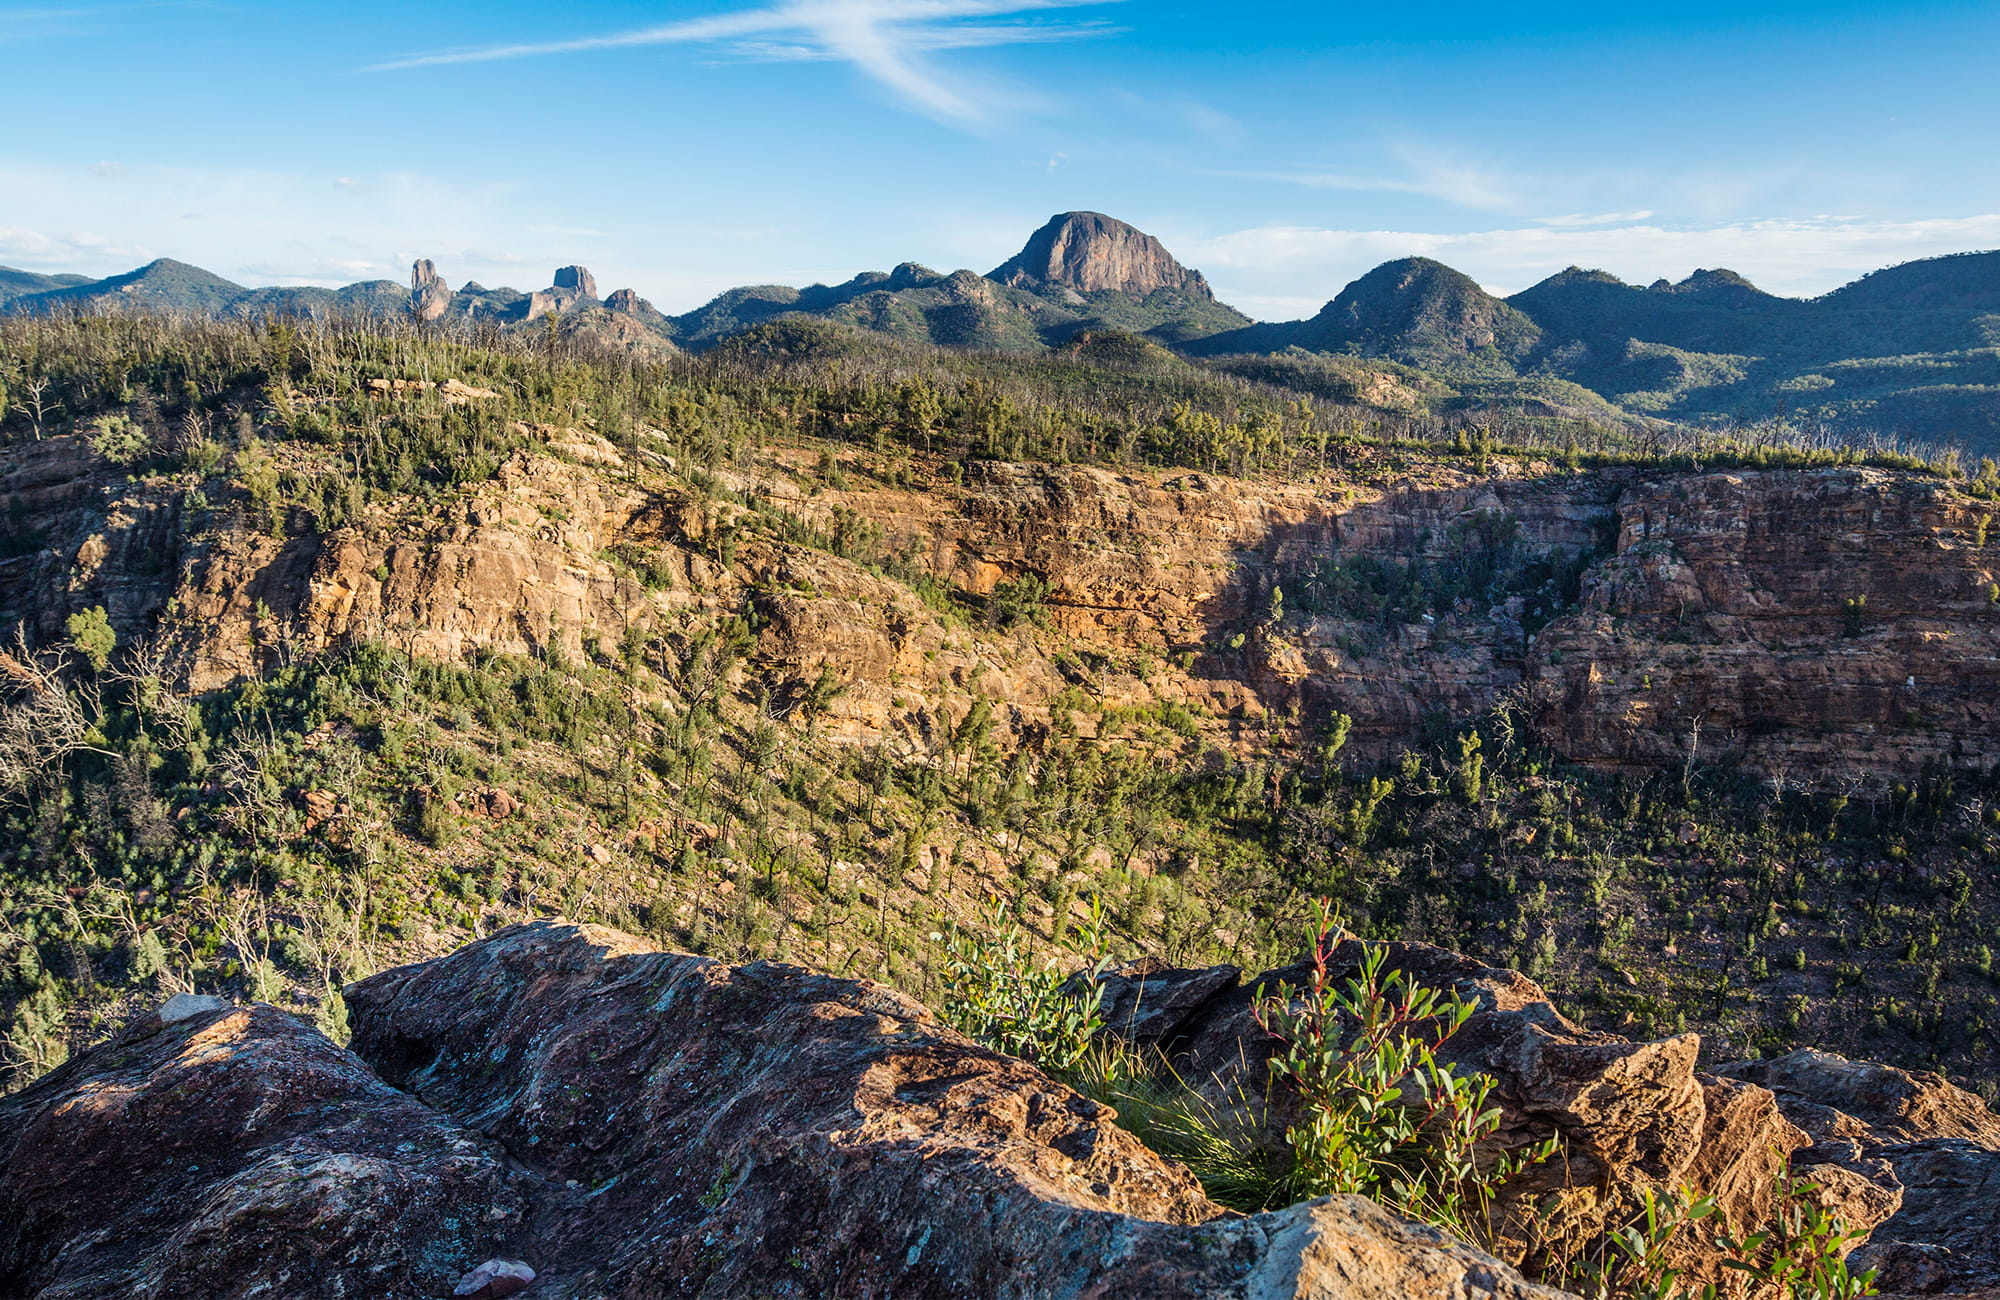 Wide view of Warrumbungles' rocky crags, spires and domes, with Bluff Moutain at centre. Photo: Simone Cottrell/OEH.